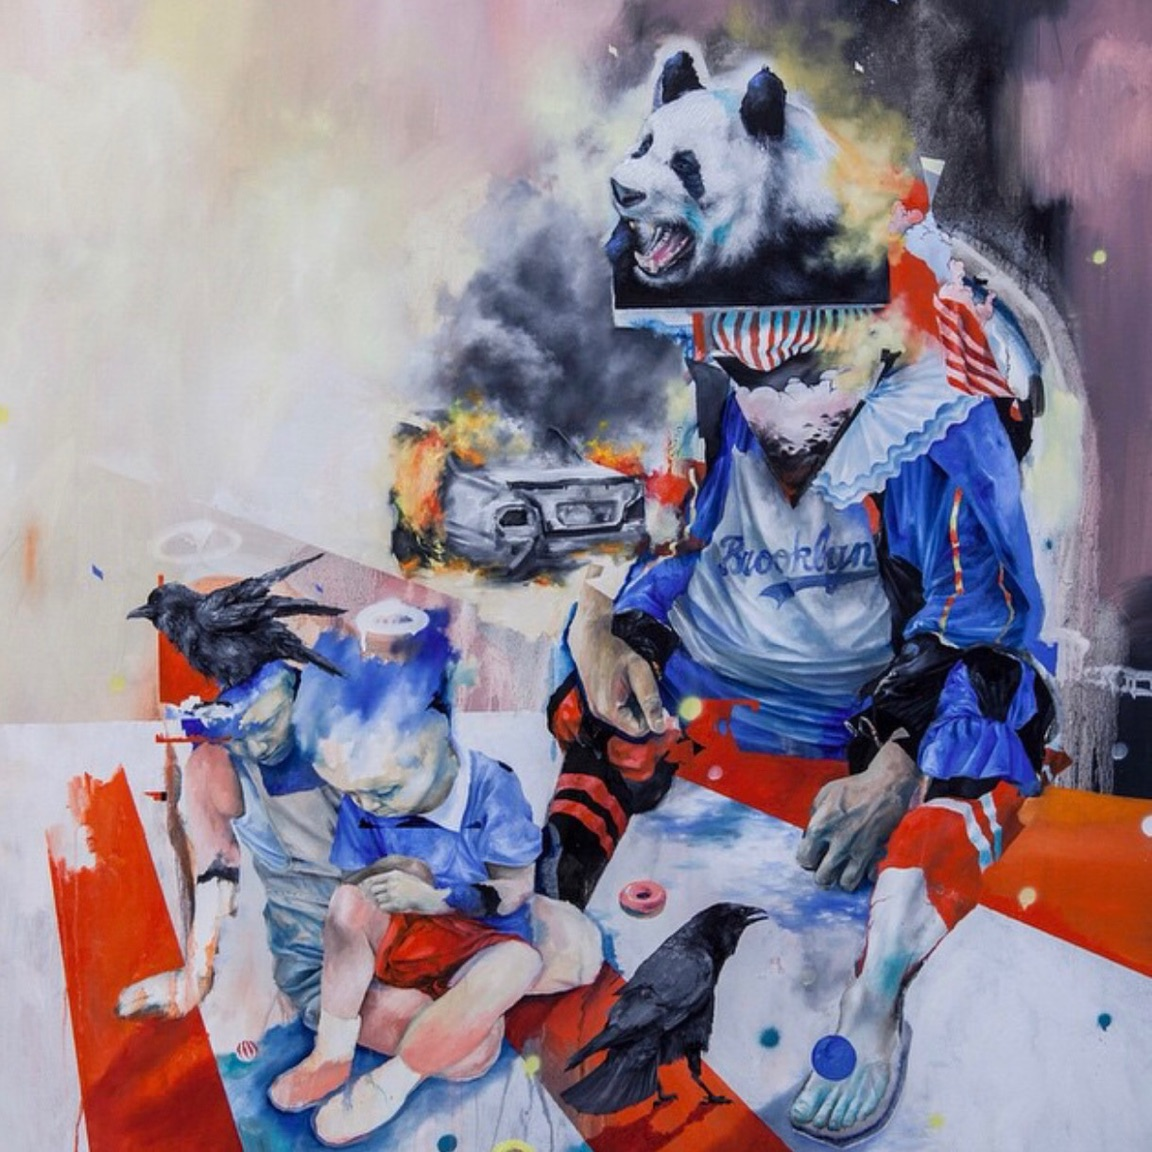 Treason Gallery_Joram Roukes-16.jpeg